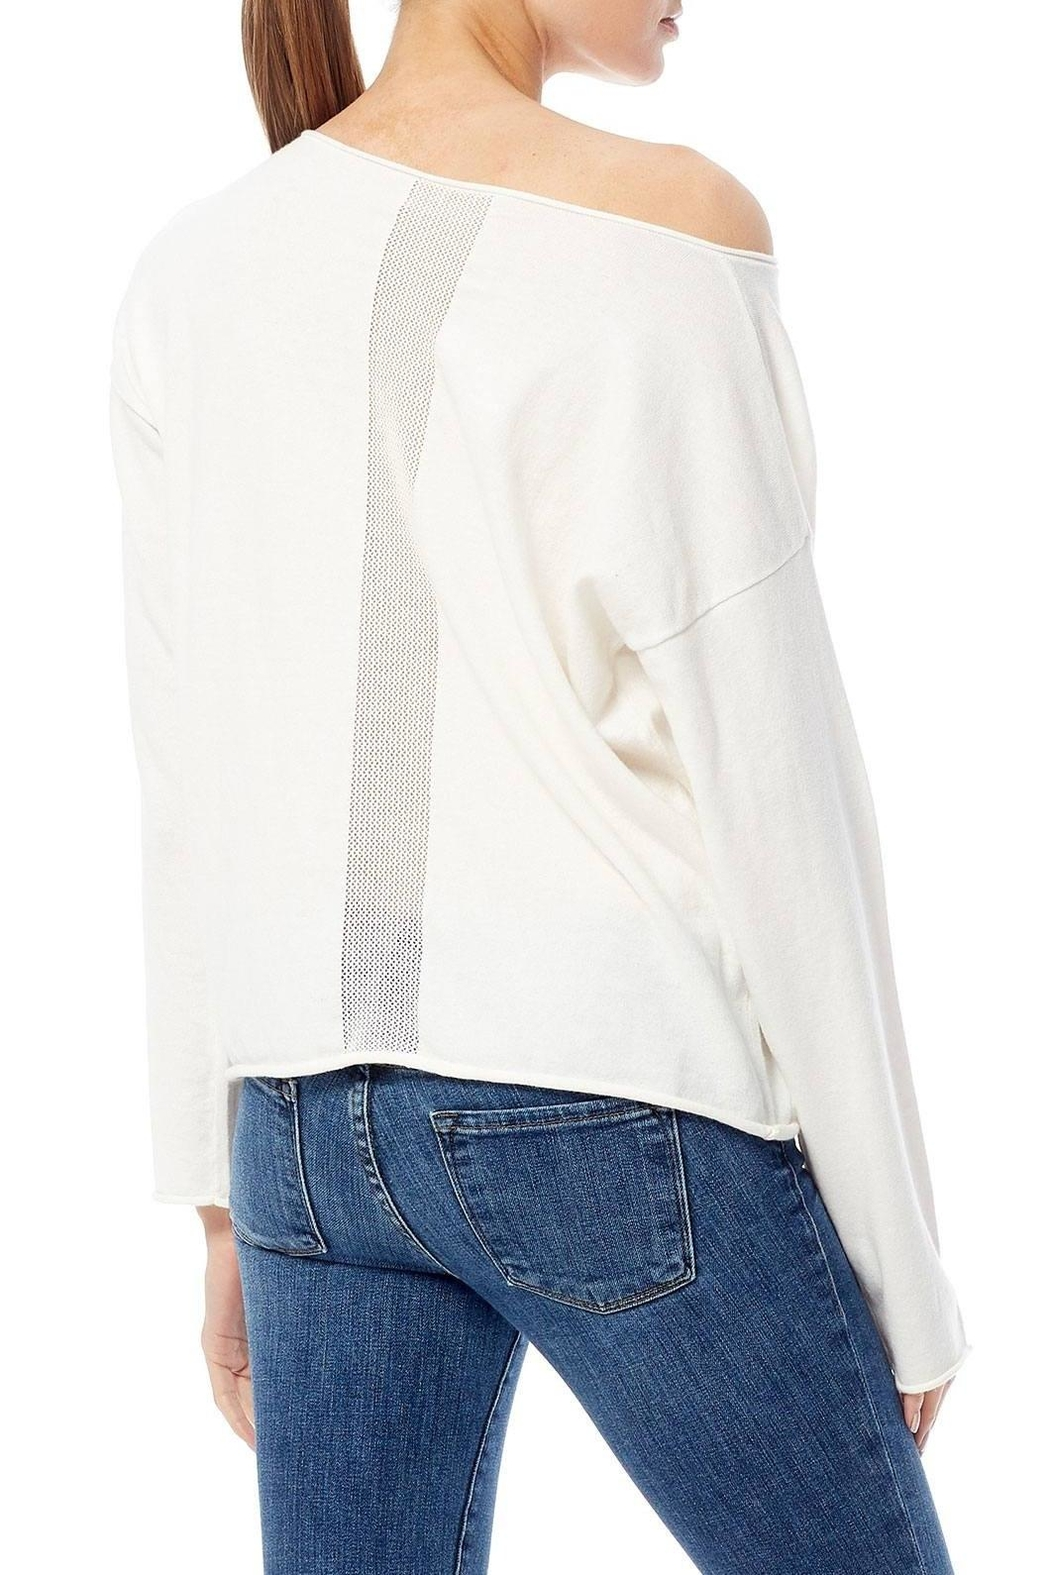 Skull Cashmere Darcy Skull Sweater - Side Cropped Image